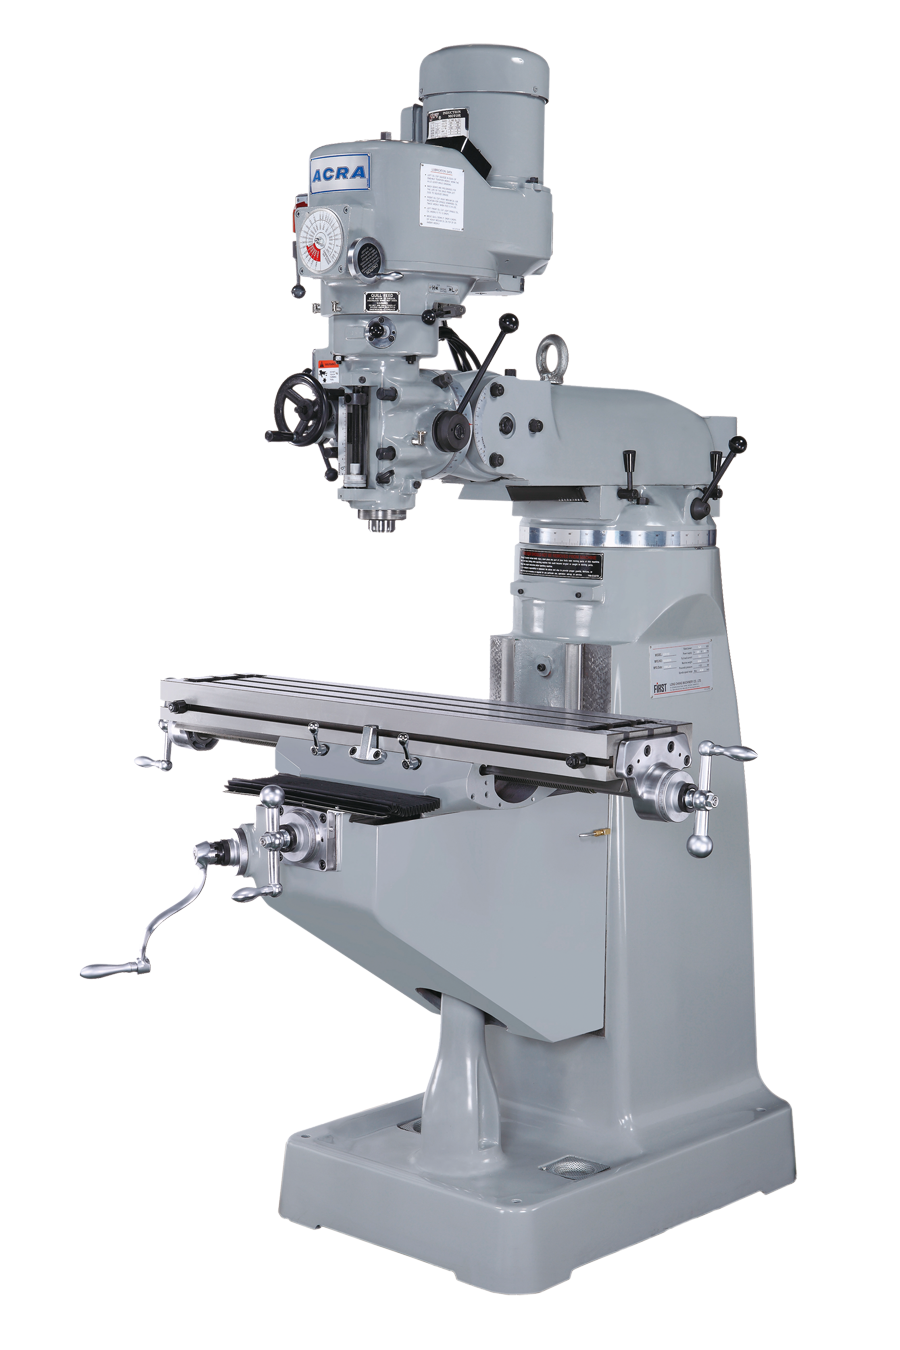 ACRA MODEL LCM50 VERTICAL STEP PULLEY MILLING MACHINE